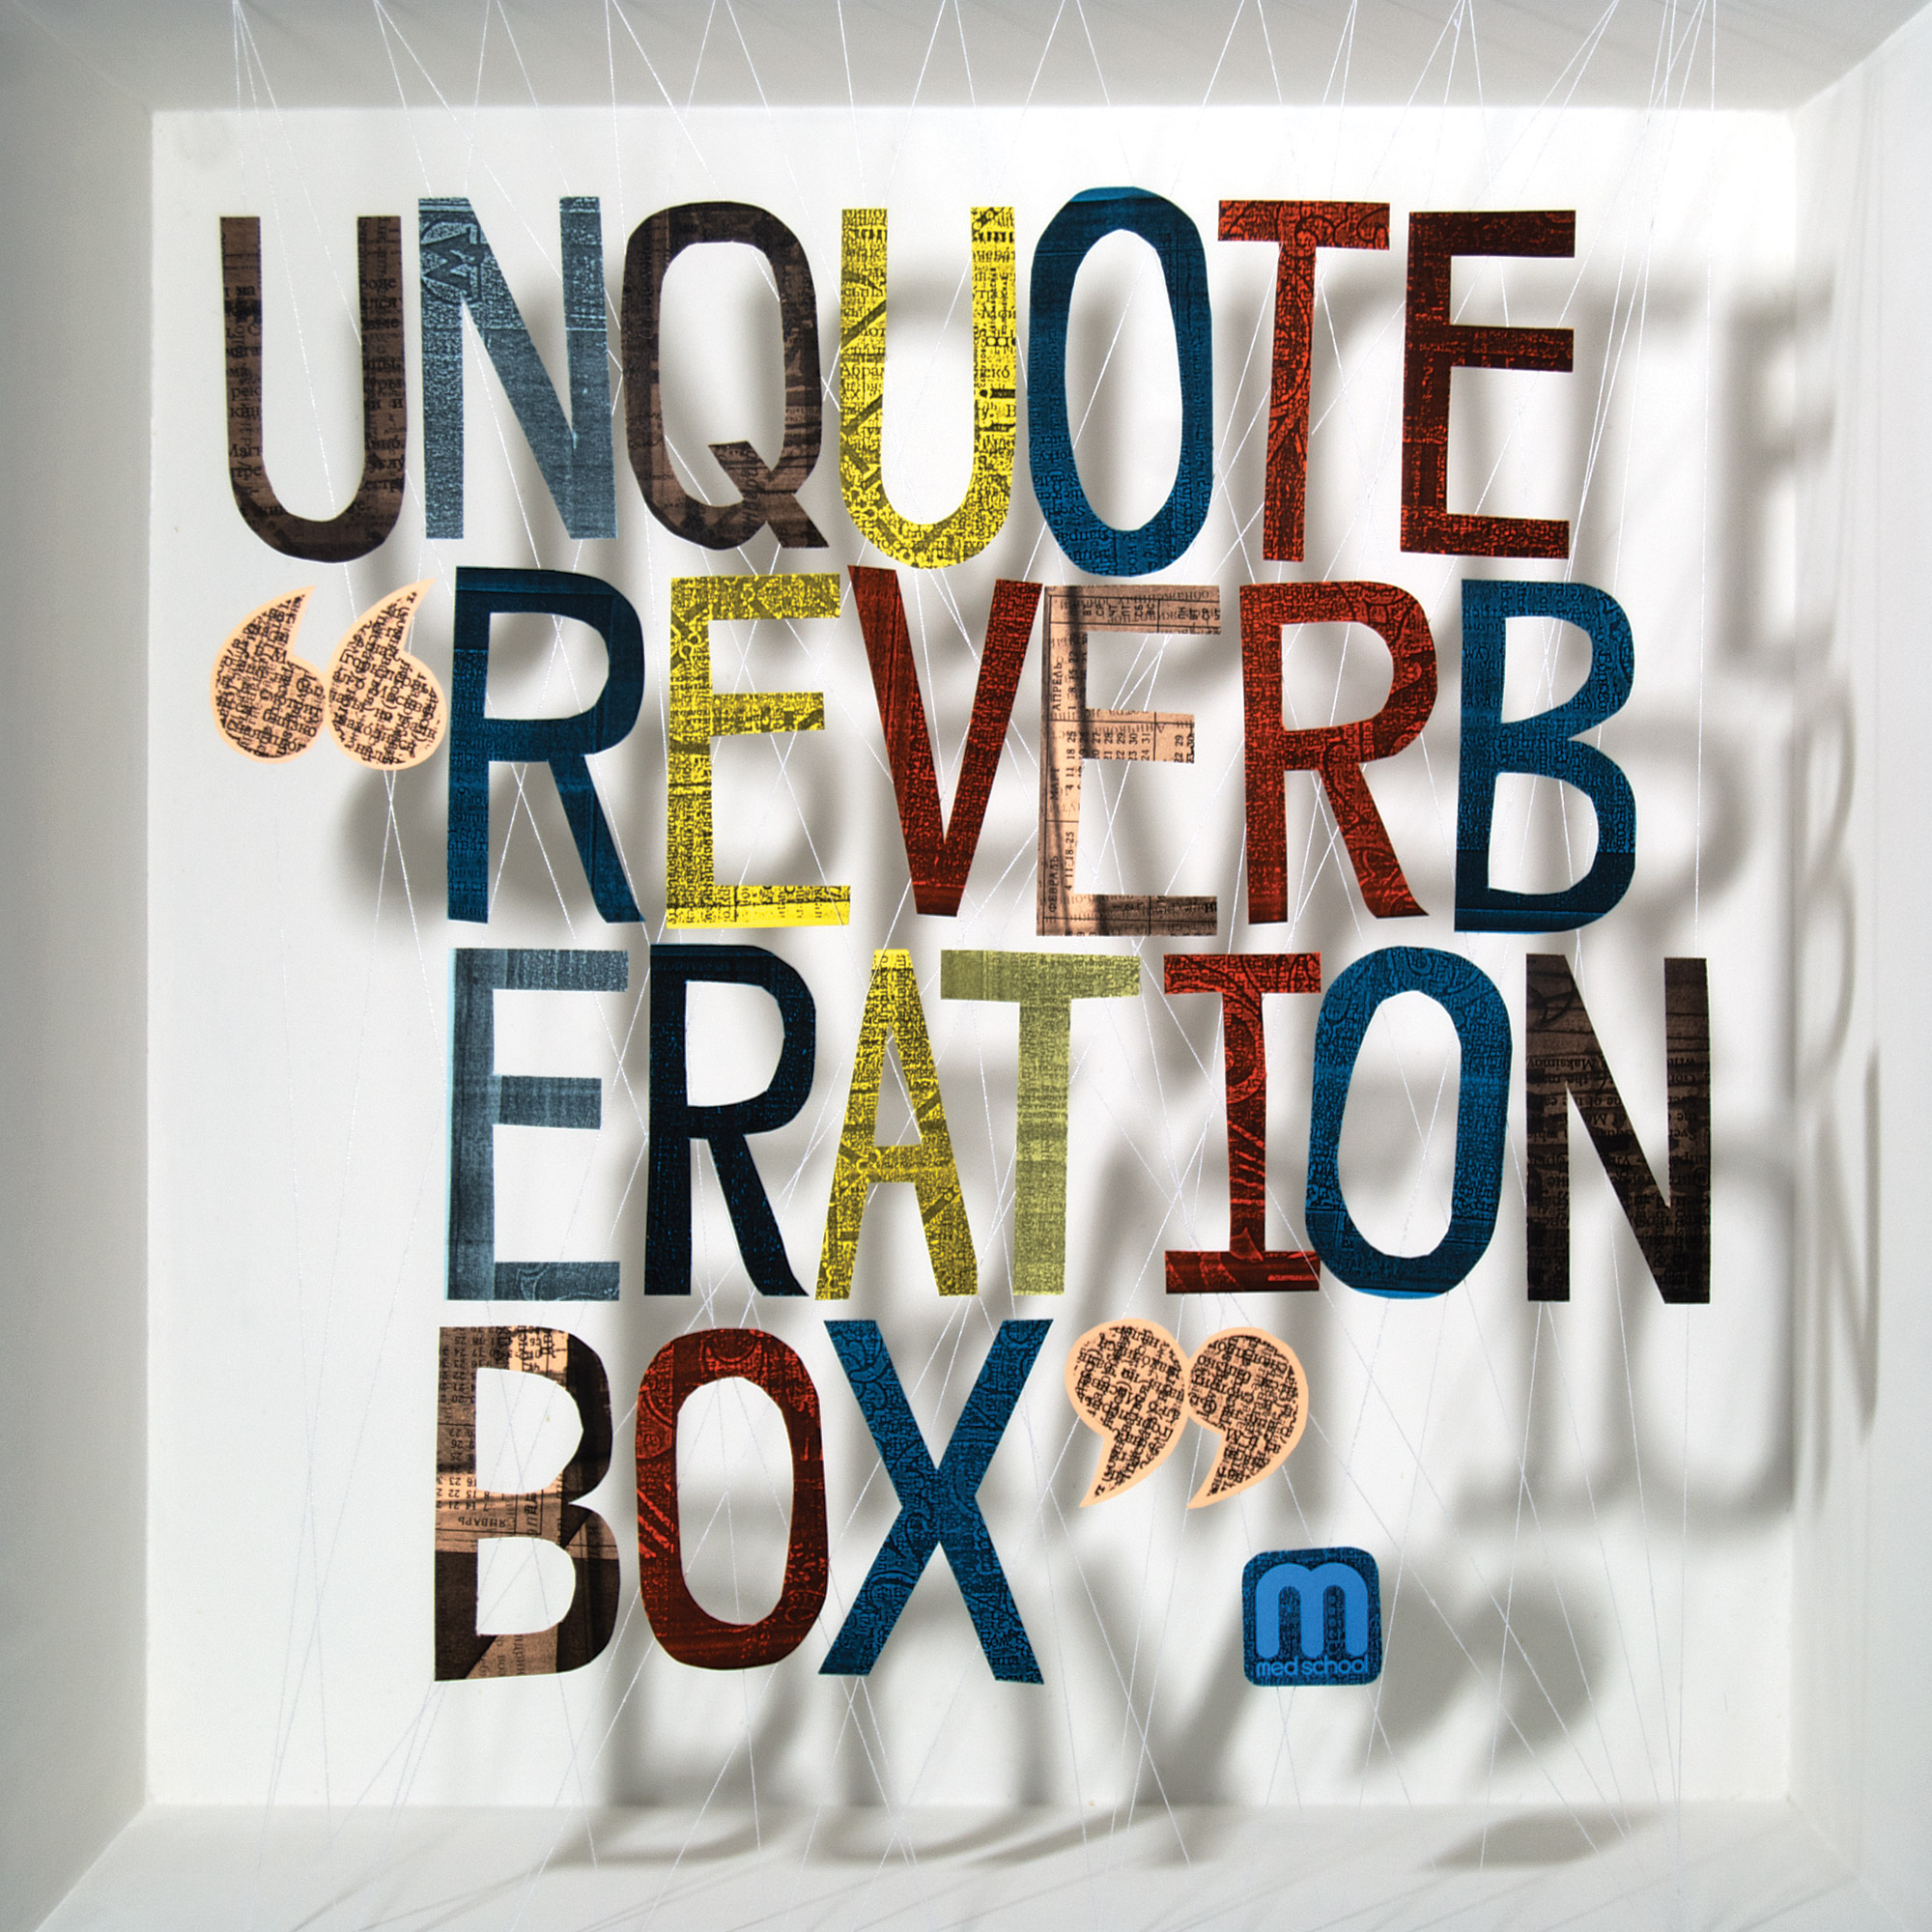 Reverberation Box is probably my favourite record cover I ever made